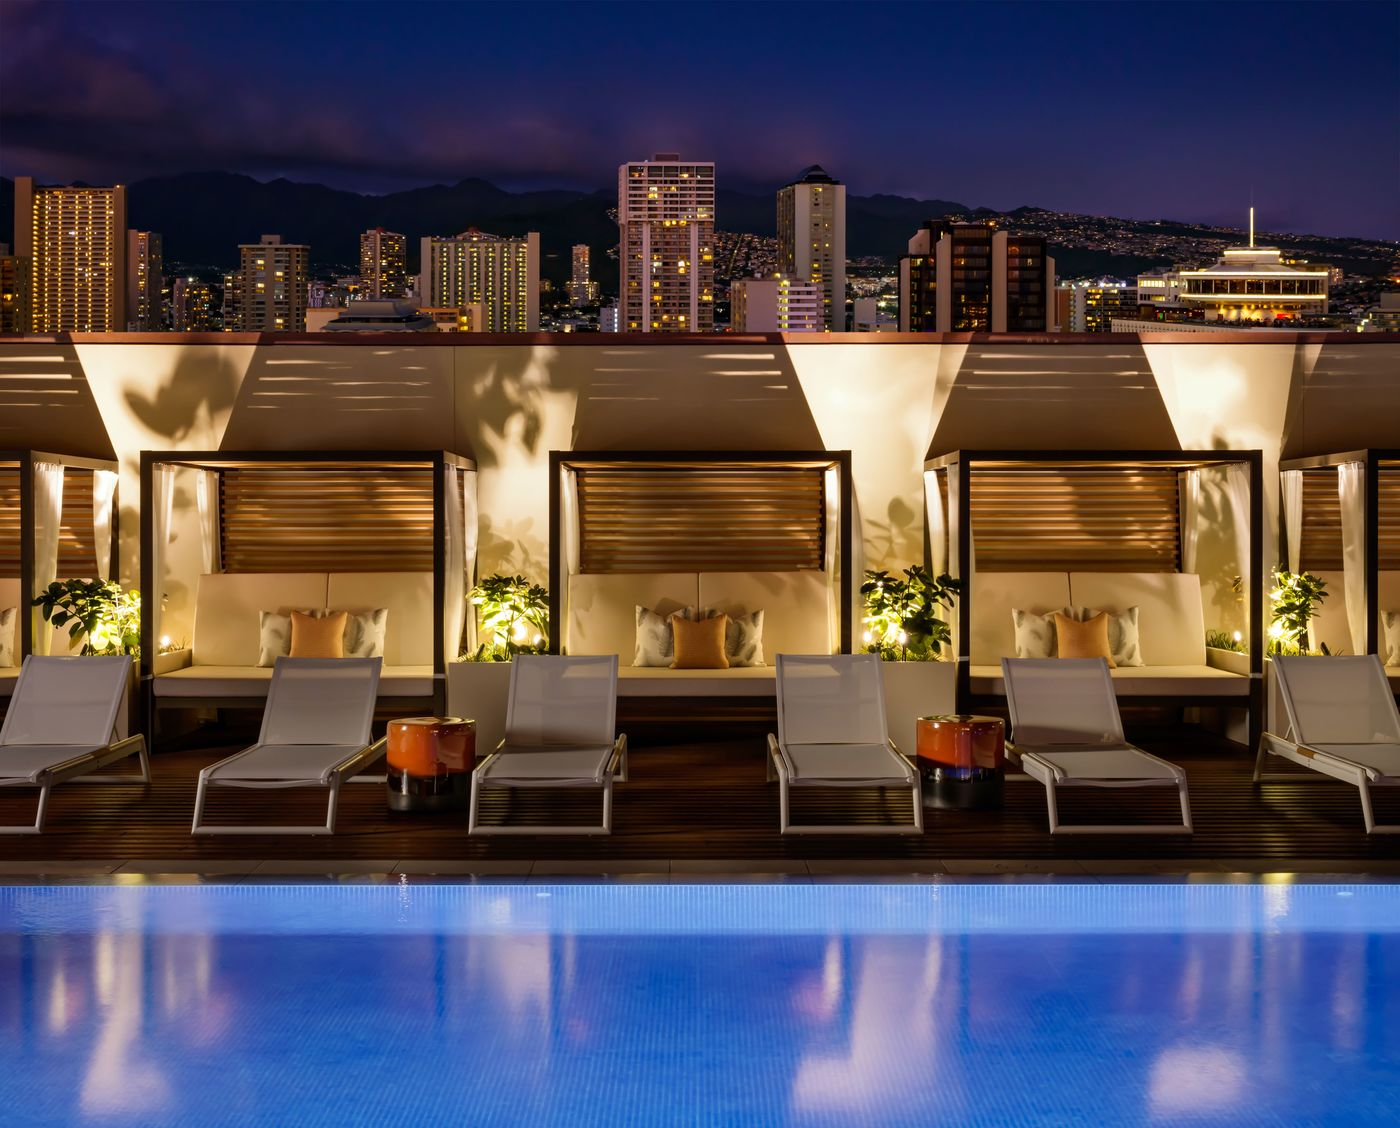 Cabanas at the new Halepuna Waikiki